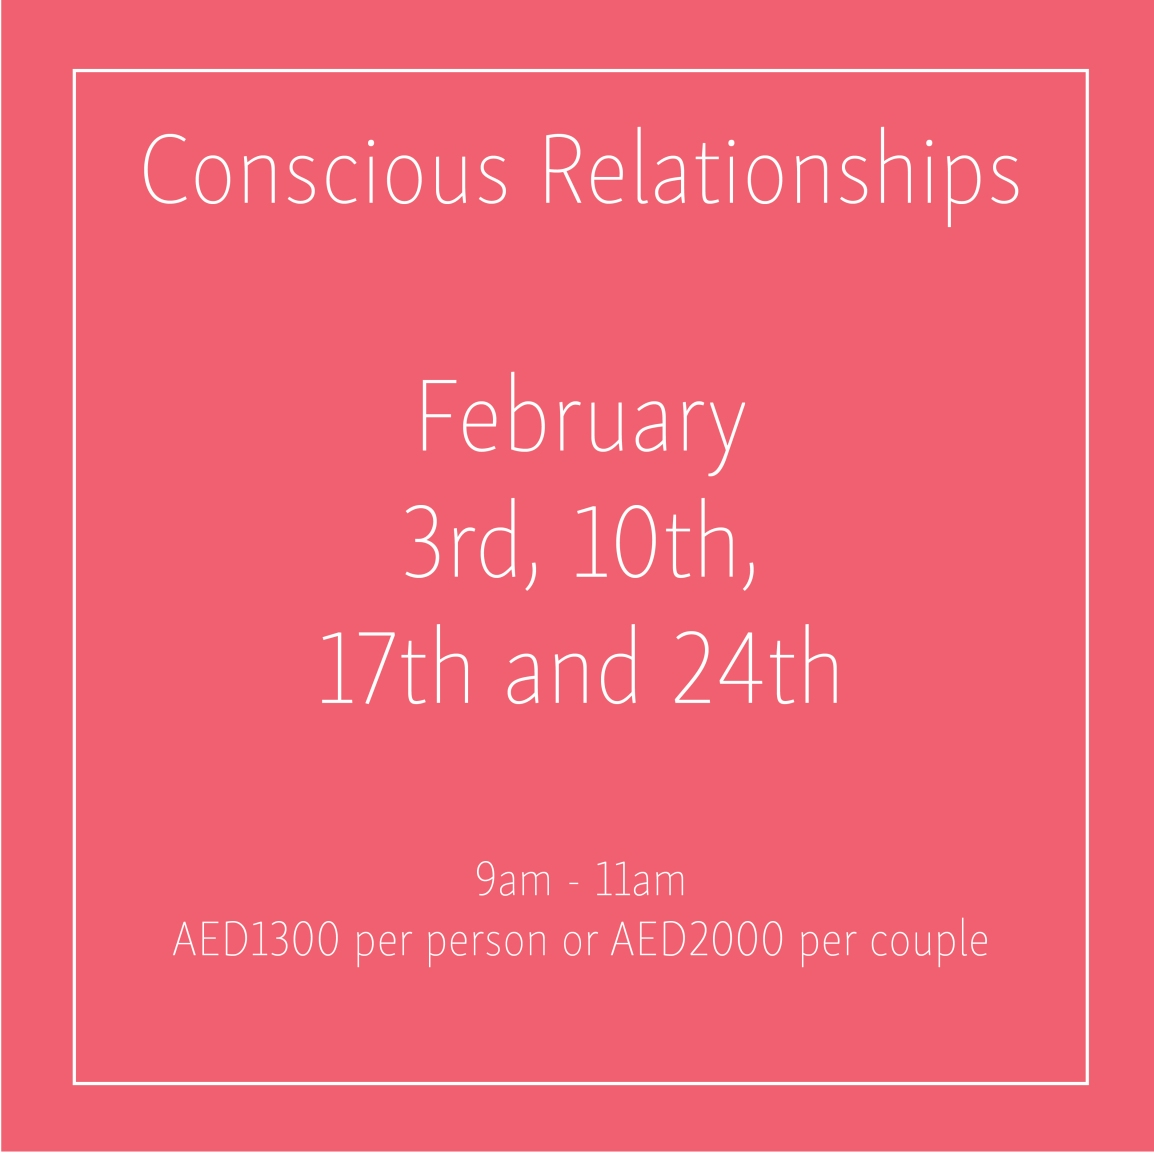 Conscious Relationships February_Social Media Art 1